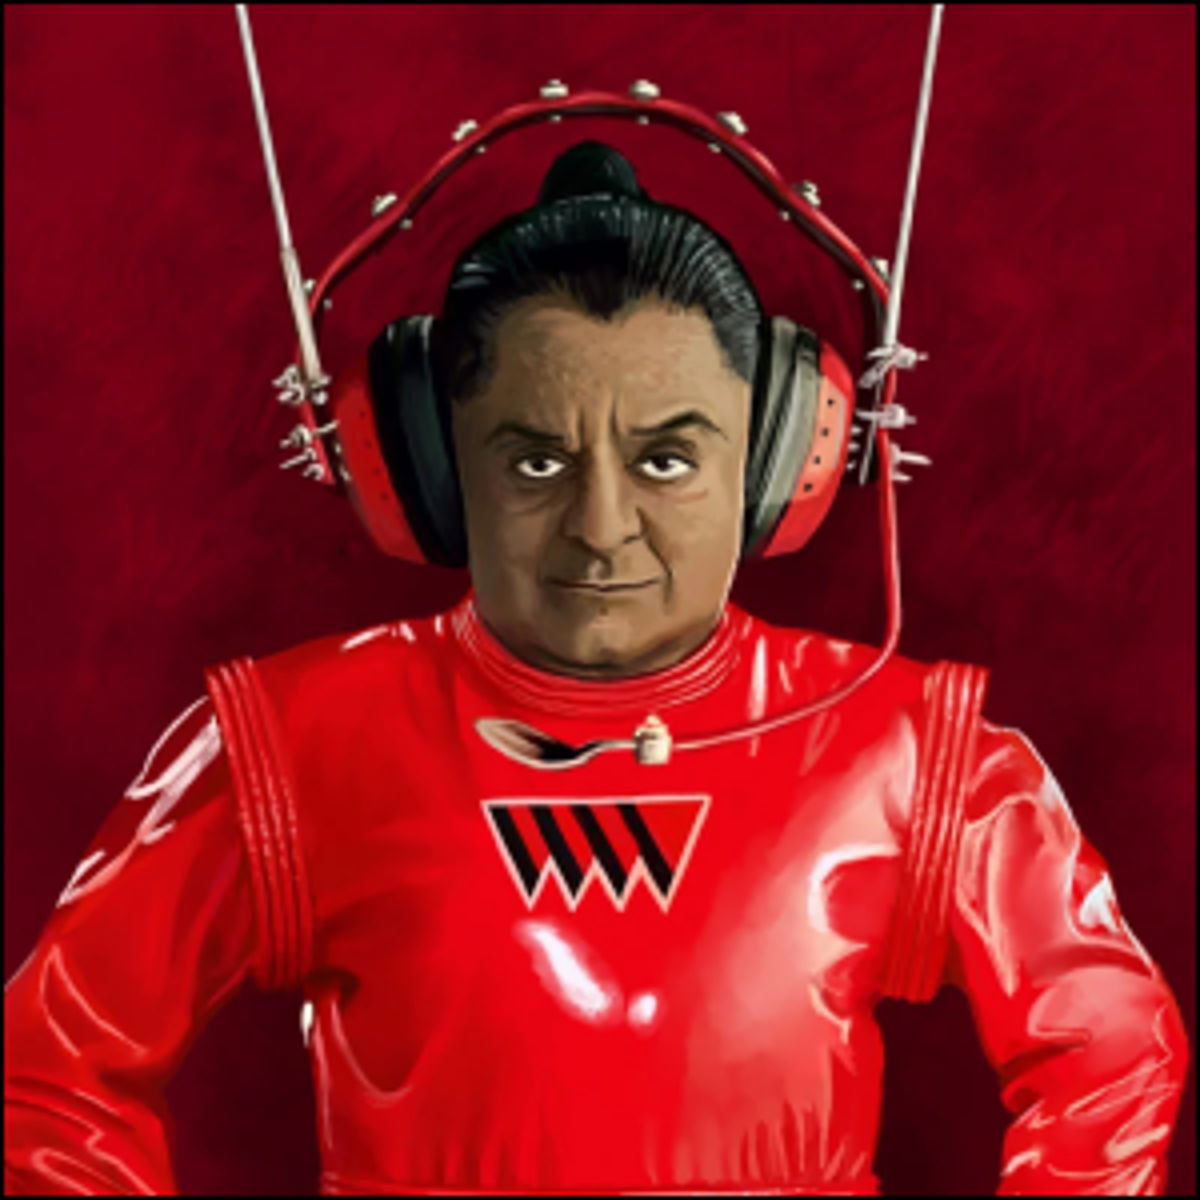 Deep Roy as an Oompa-Loompa in Charlie and the Chocolate Factory.